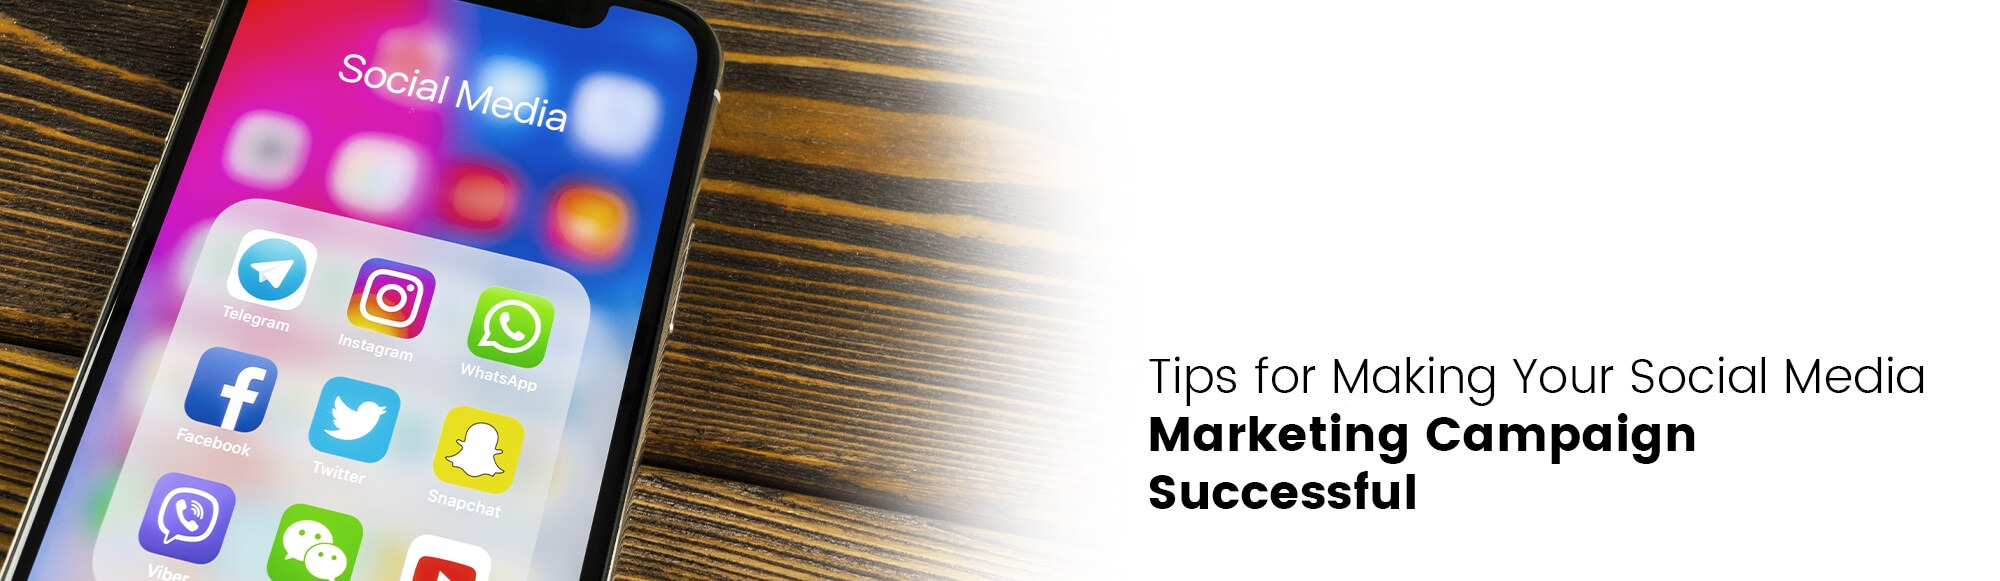 Out latest blog explains everything you need to know about social media marketing.